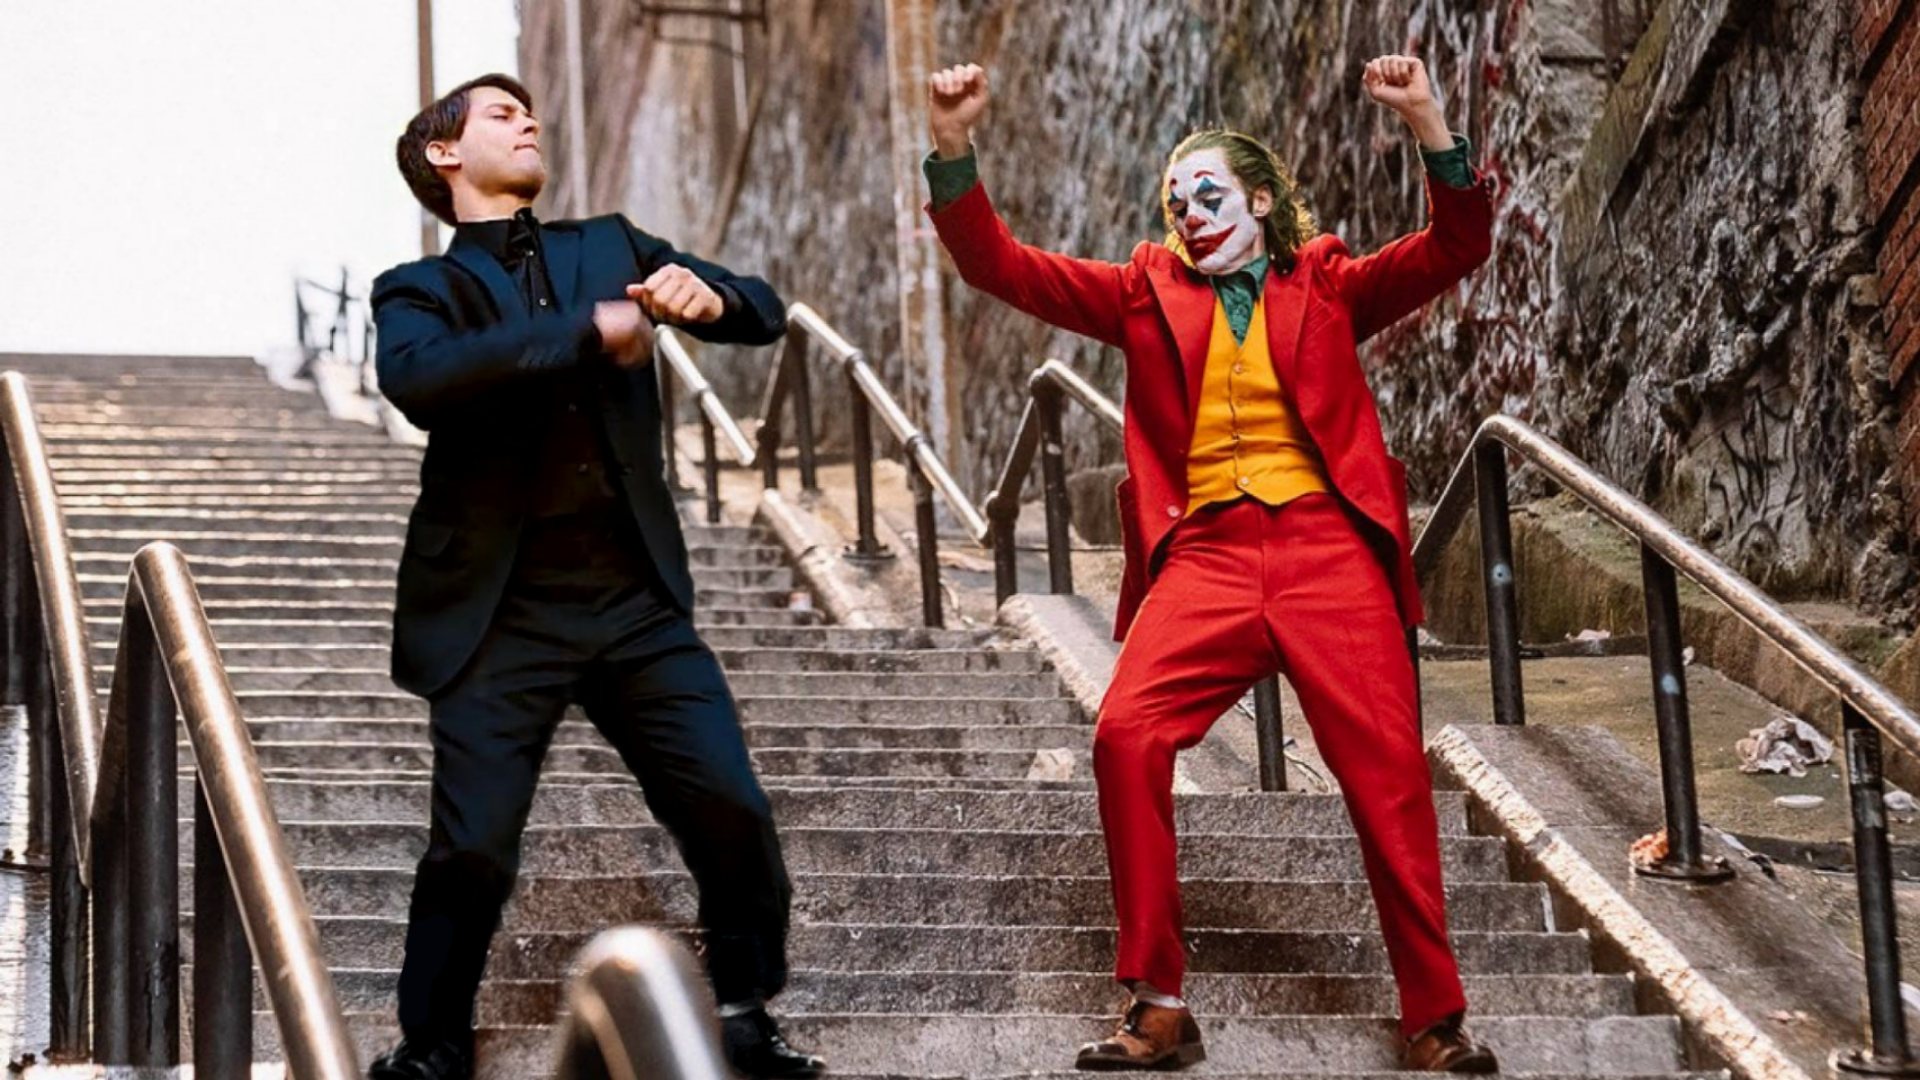 The template for the new trending meme that puts Tobey Maguire's Peter Parker with Joaquin Pheonix's Joker.